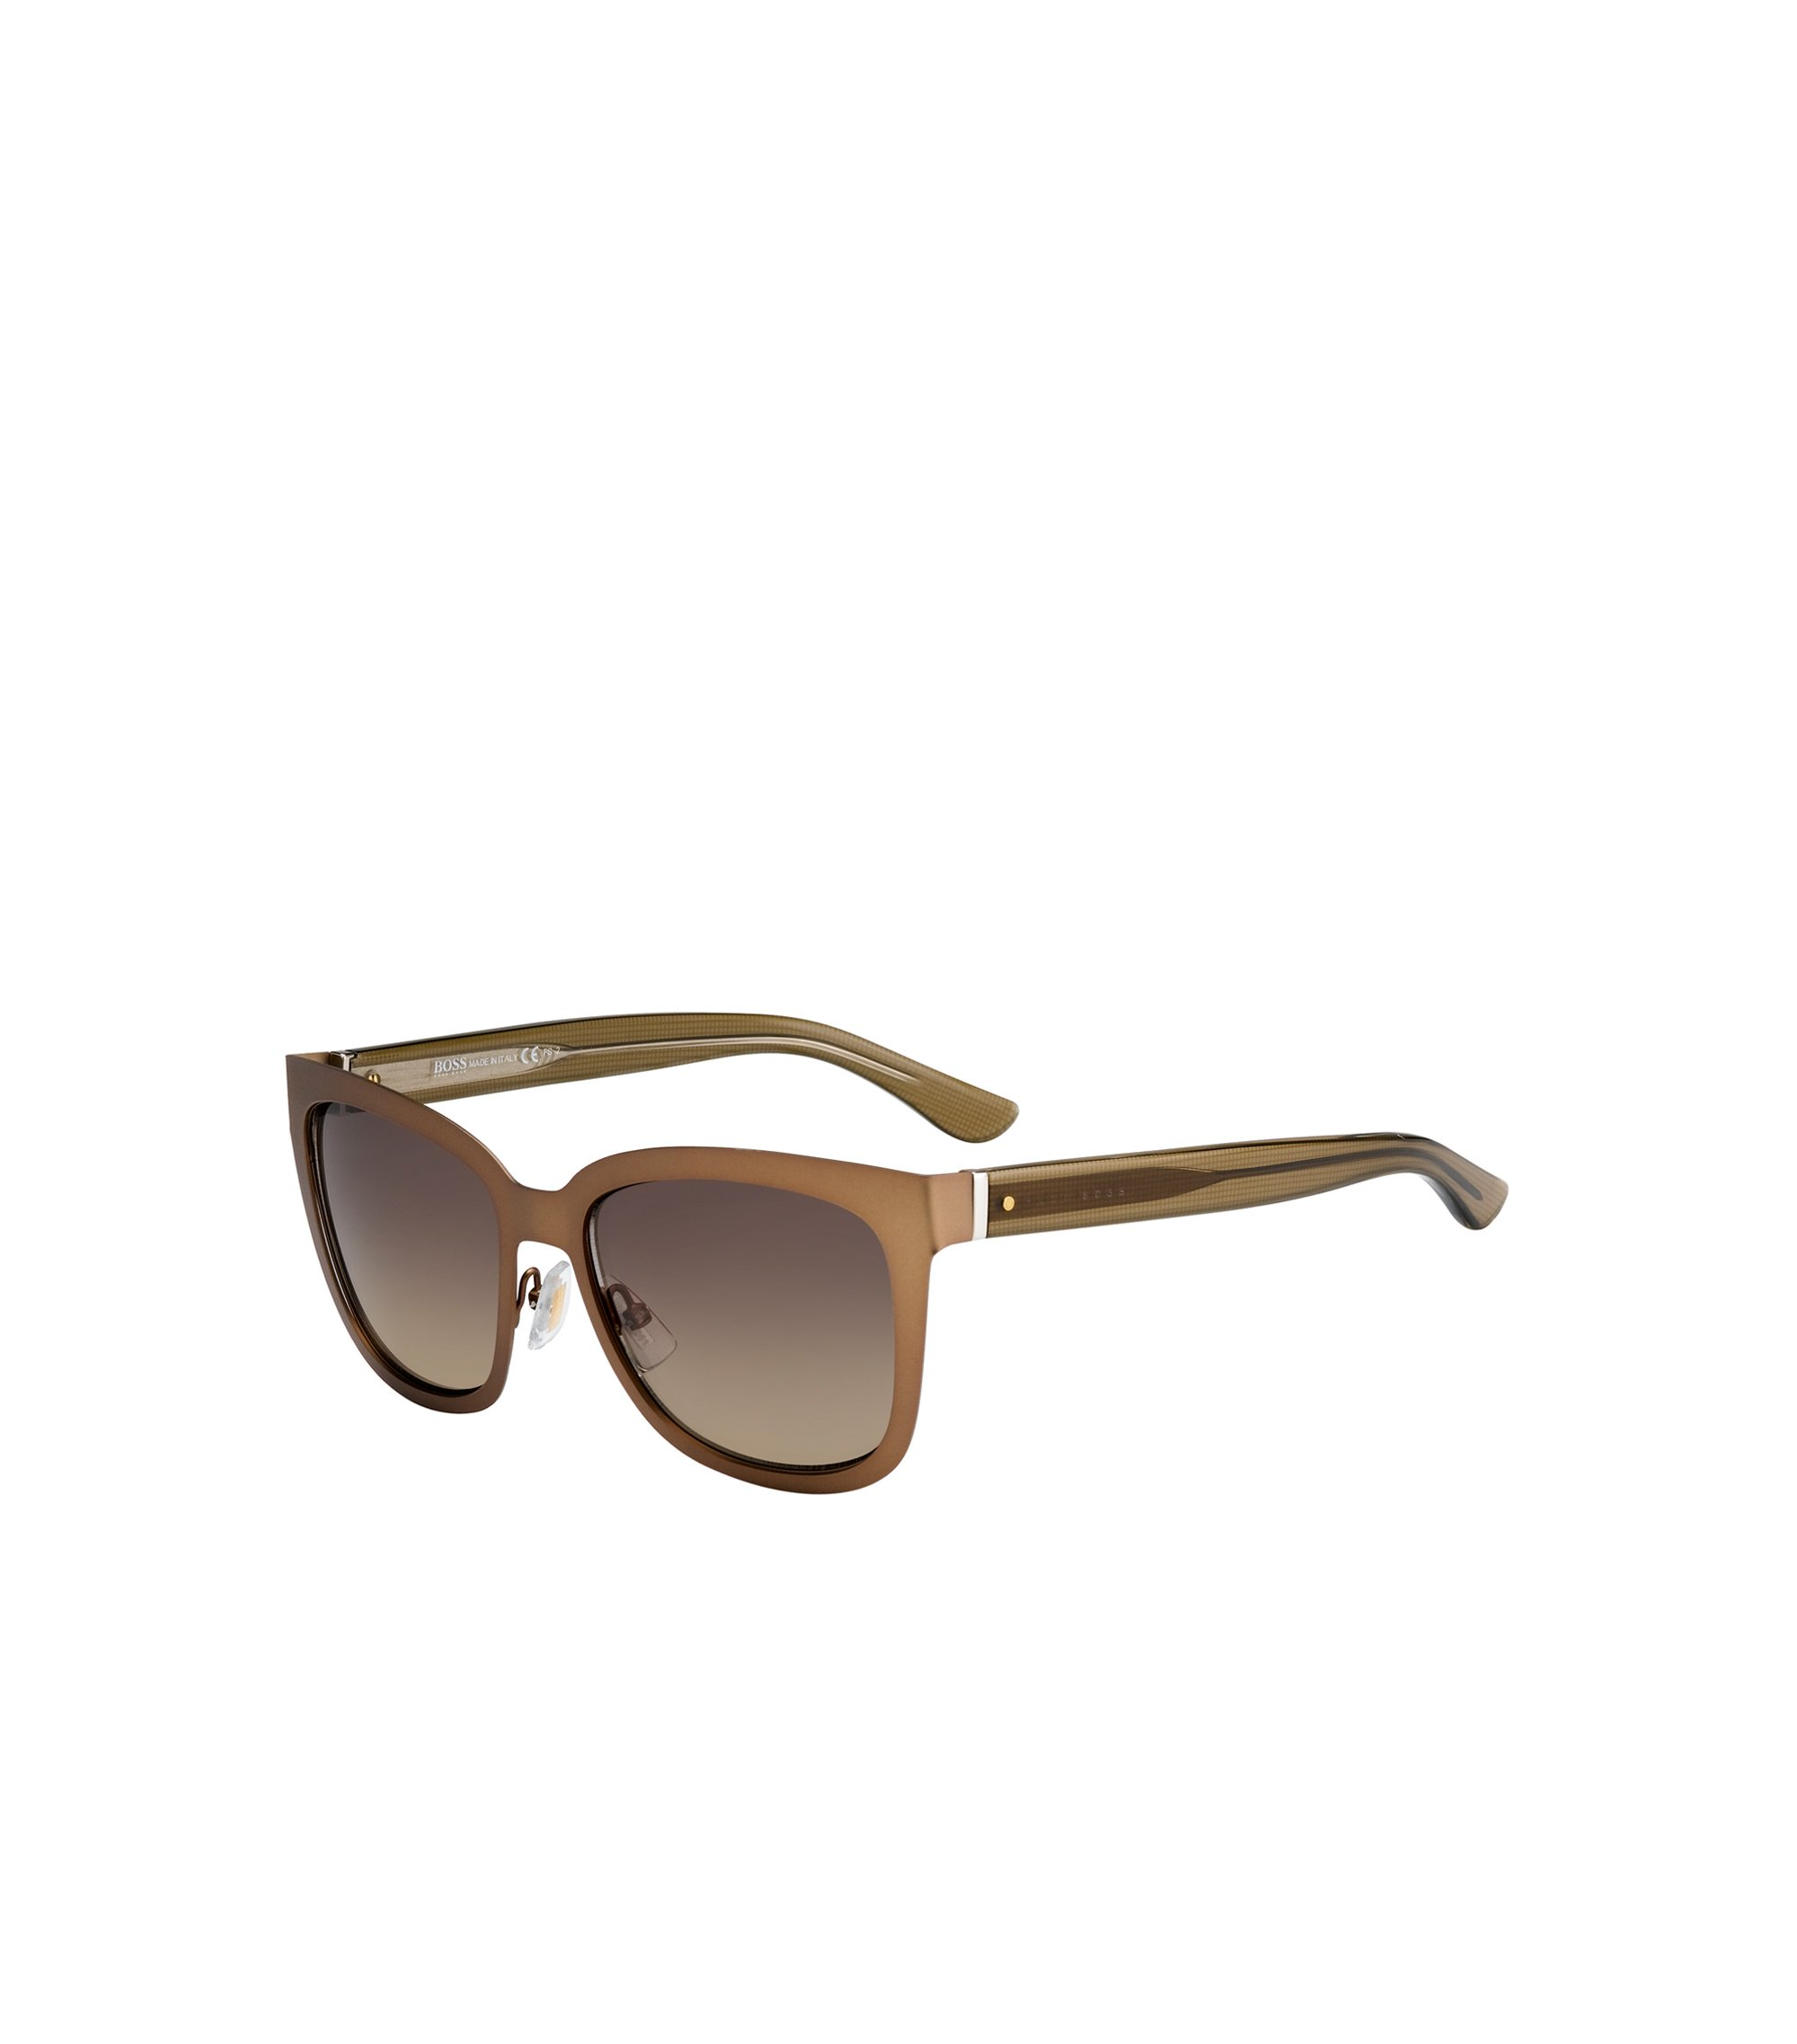 Brown Gradient Lens Rectangular Sunglasses | BOSS 676S, Assorted-Pre-Pack